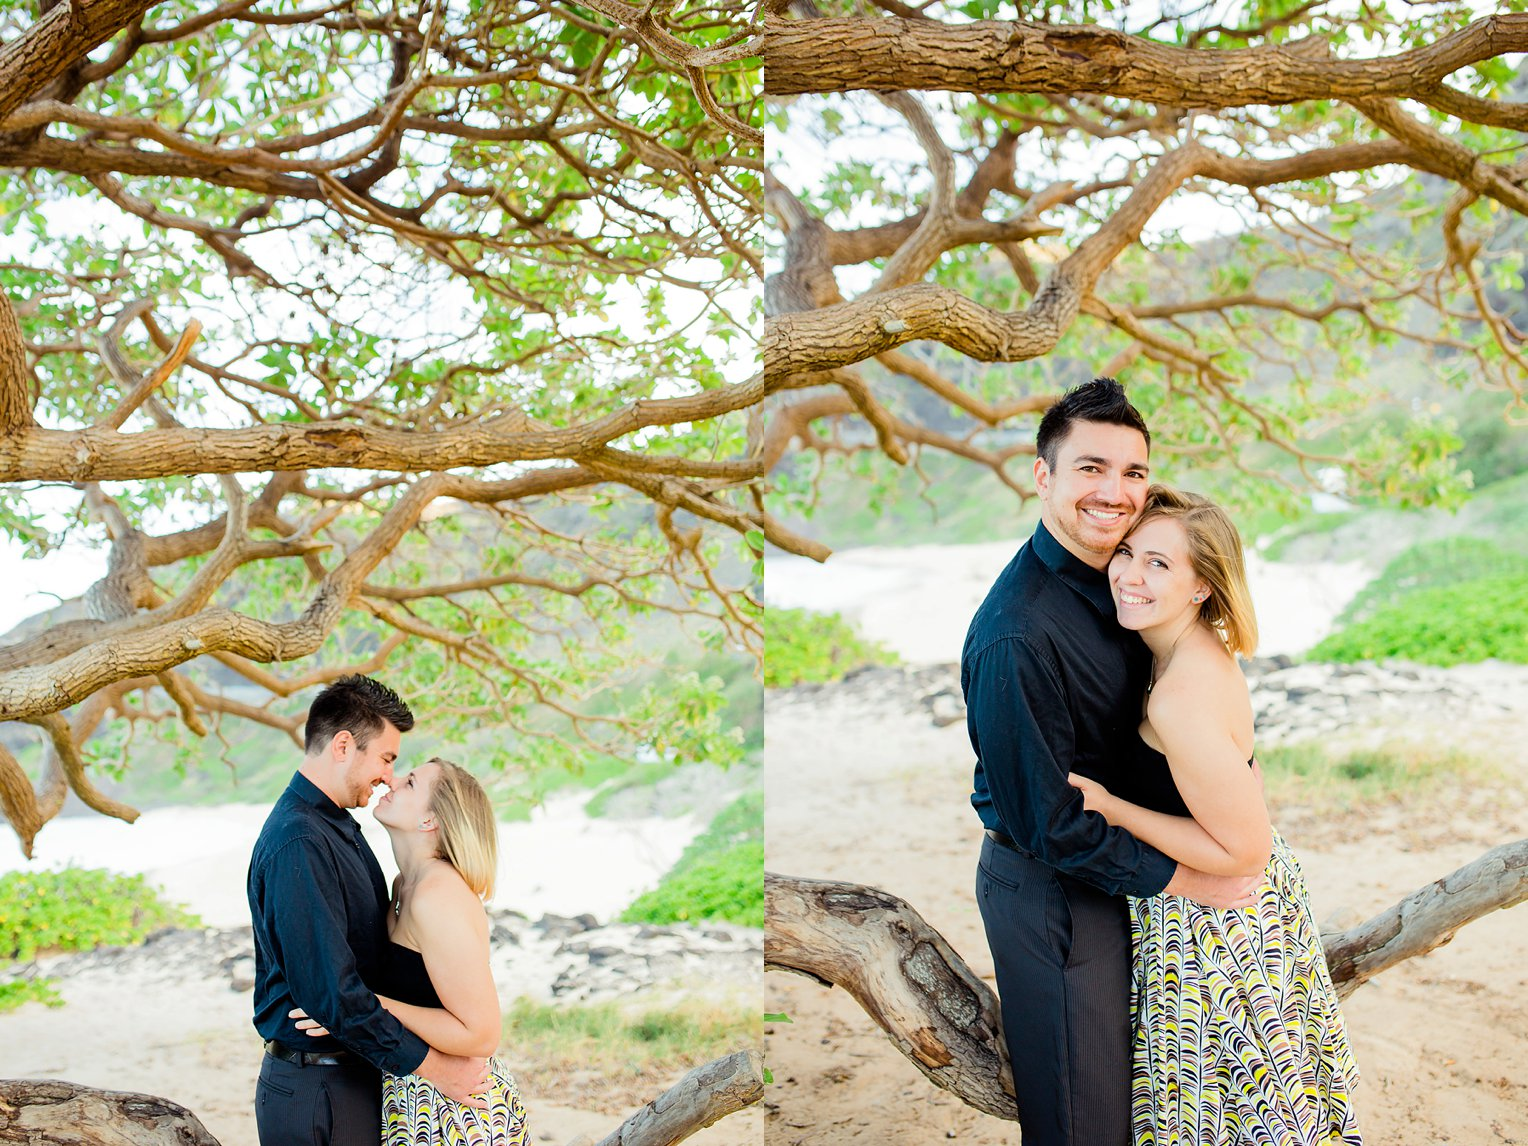 Oahu Engagement Photographer Hawaii Wedding Photographer_0032.jpg